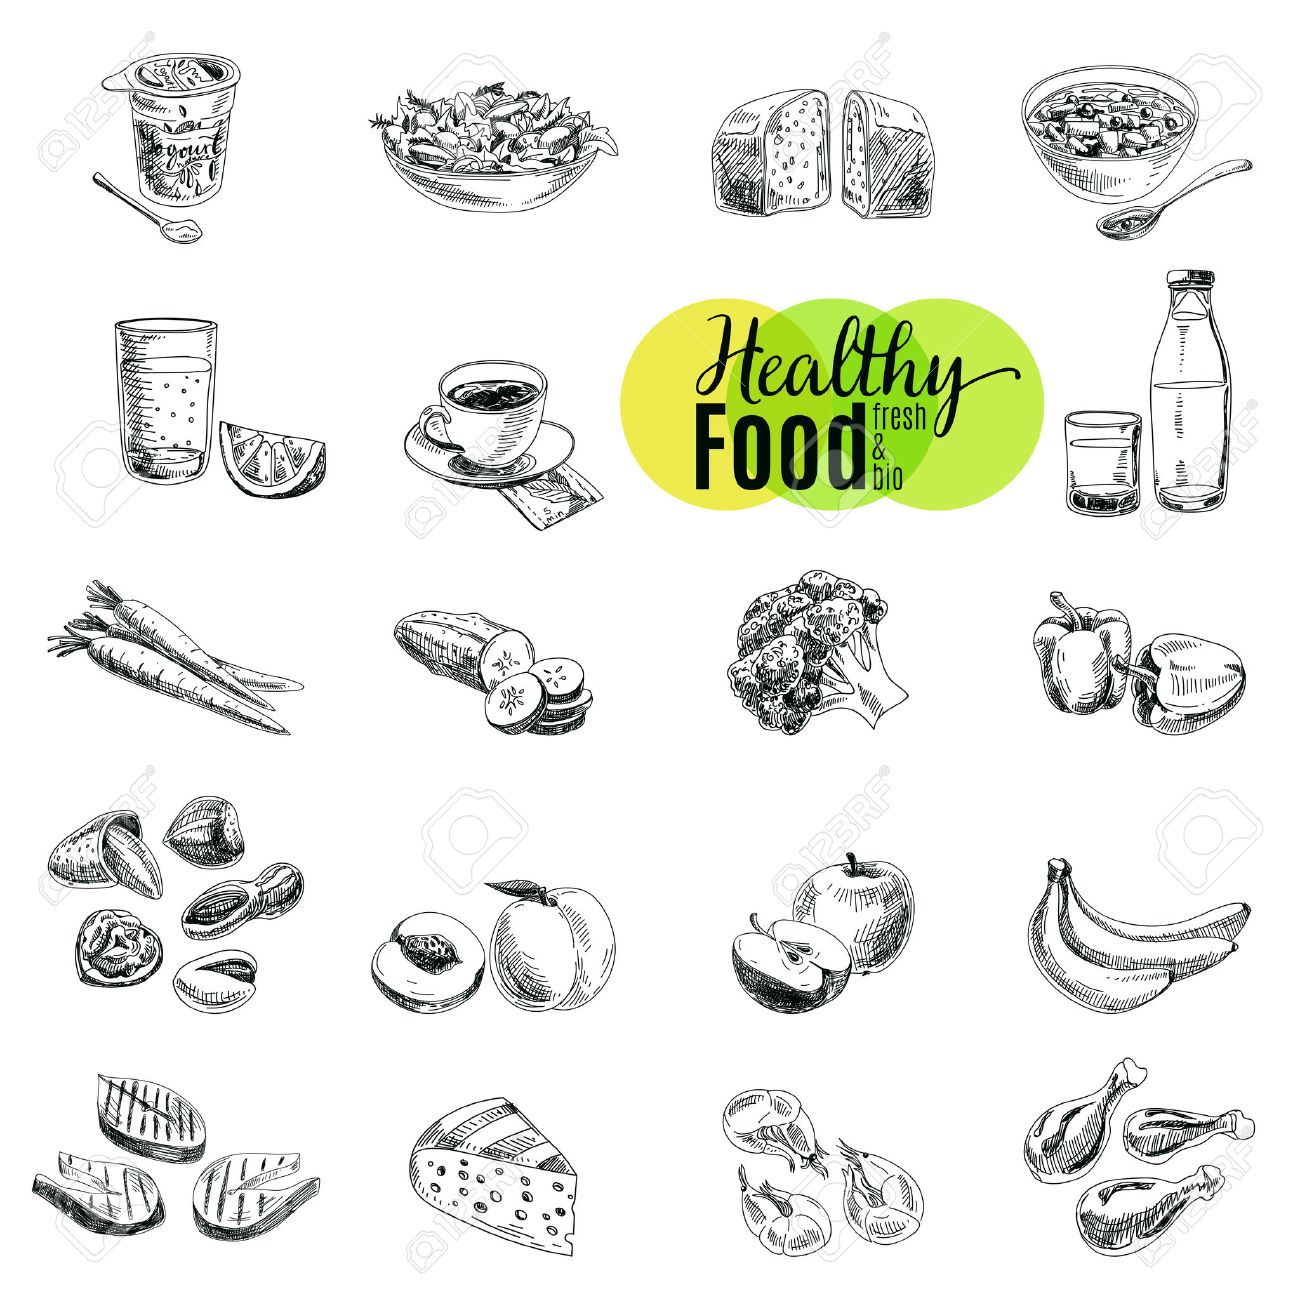 Vector set of healthy food. Vector illustration in sketch style. Hand drawn design elements. Stock Vector - 43333282